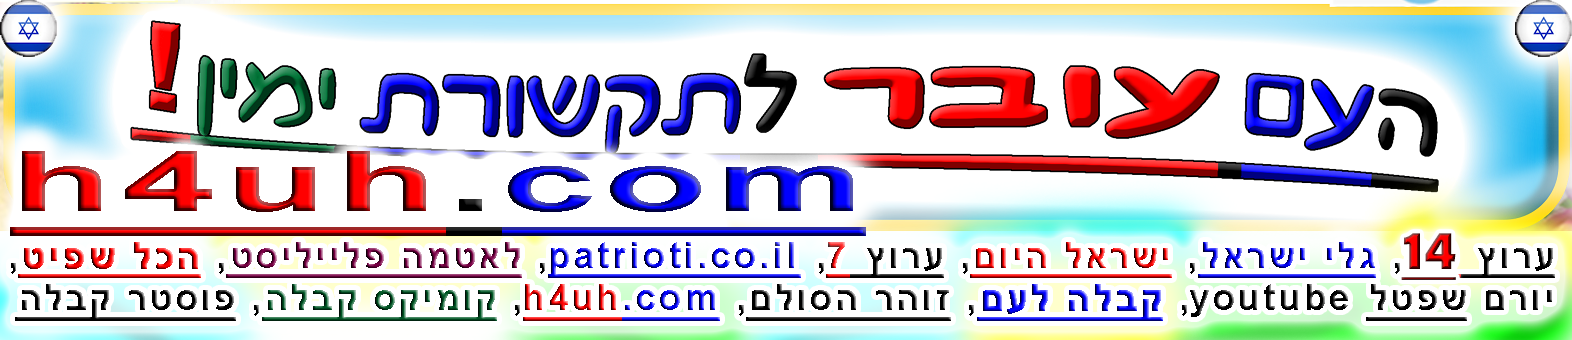 http://h4uh.com/wp-content/uploads/2020/05/israel-jerusalem-kabbalah-zionism-judaism-eretz-israel-light-love-happy.png